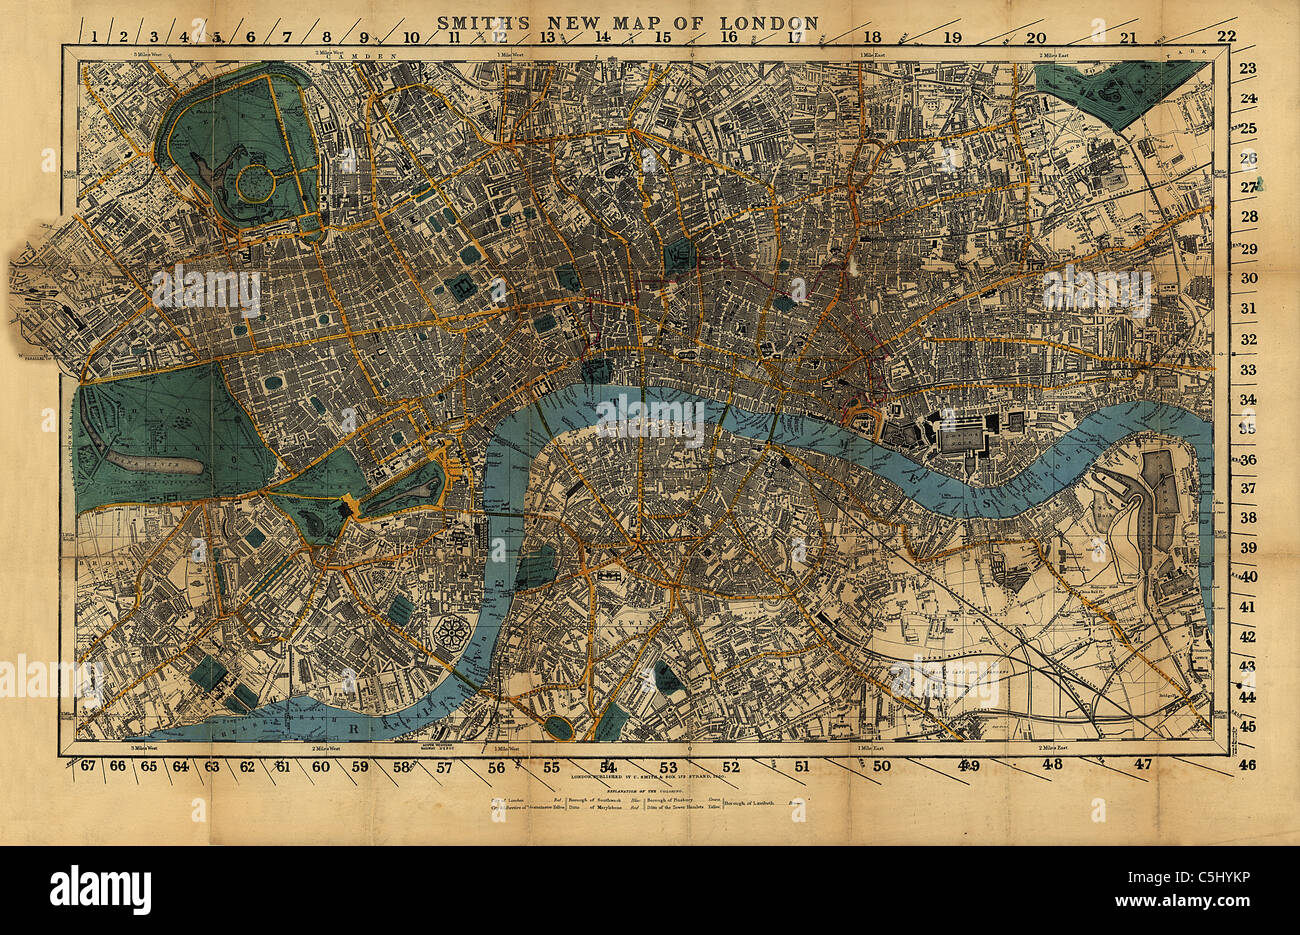 Old Map Of London Stock Photos & Old Map Of London Stock Images - Alamy